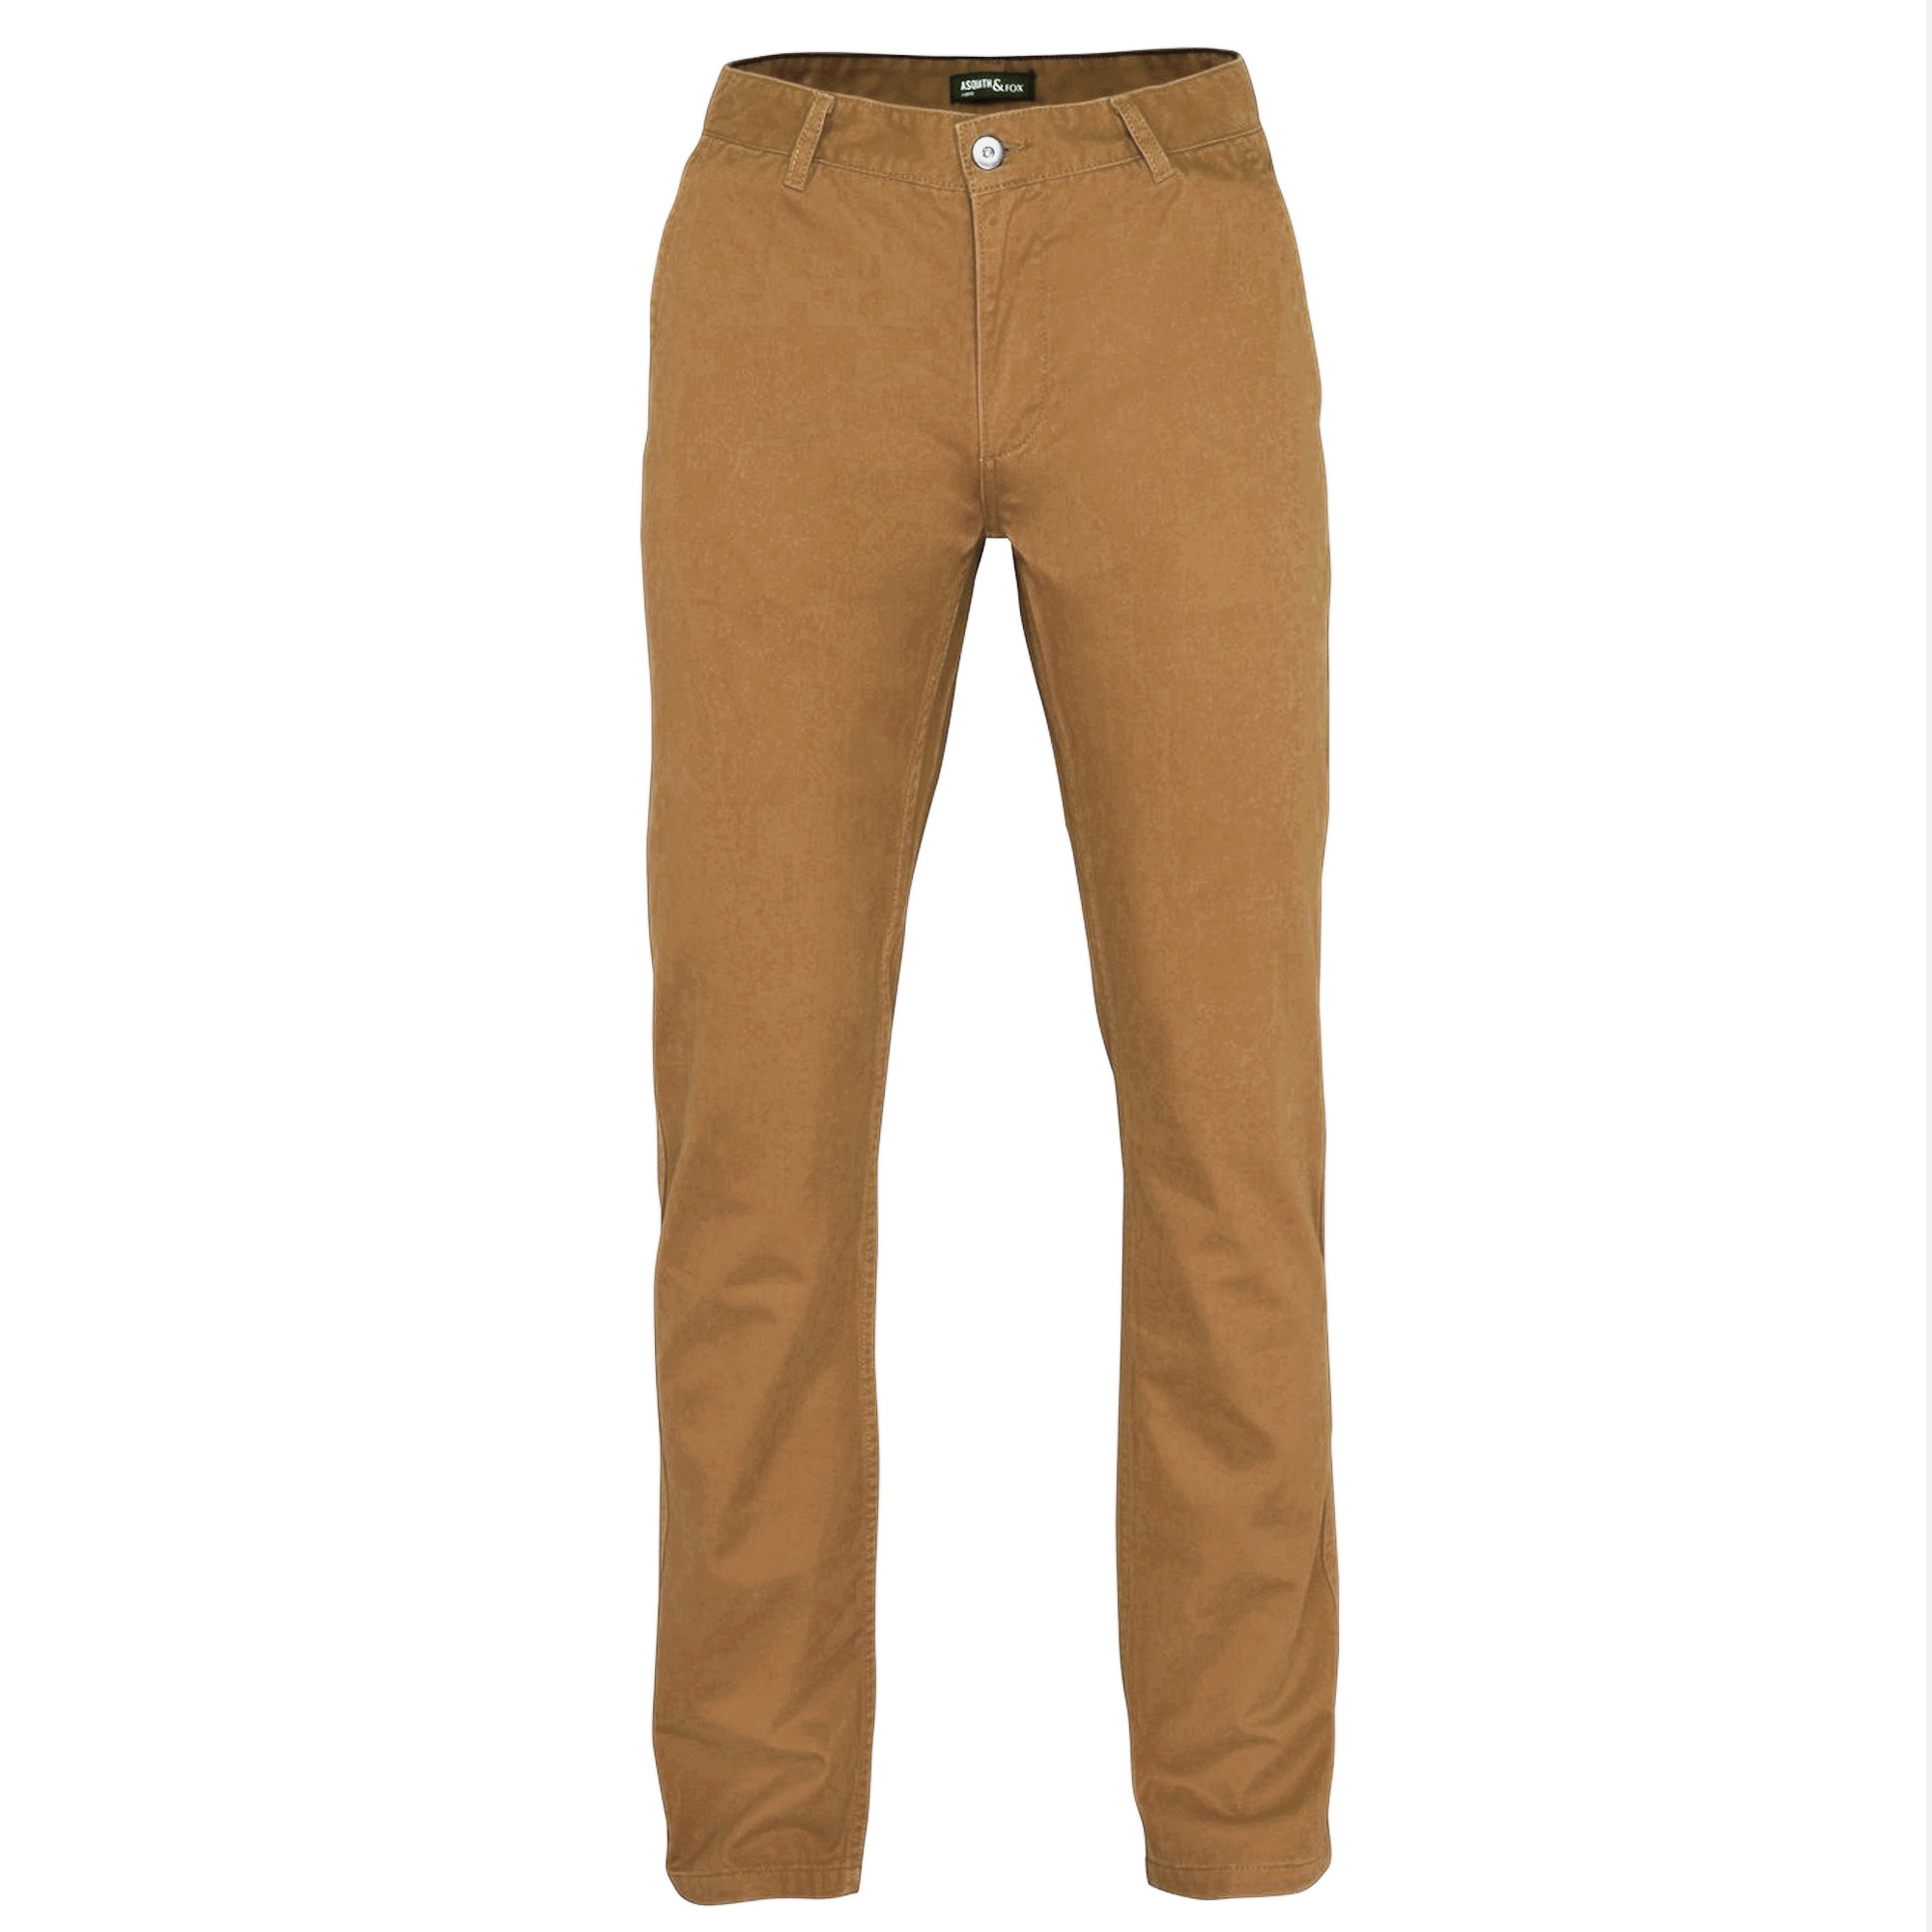 Asquith & Fox Mens Classic Casual Chinos/Trousers (XLT) (Camel)